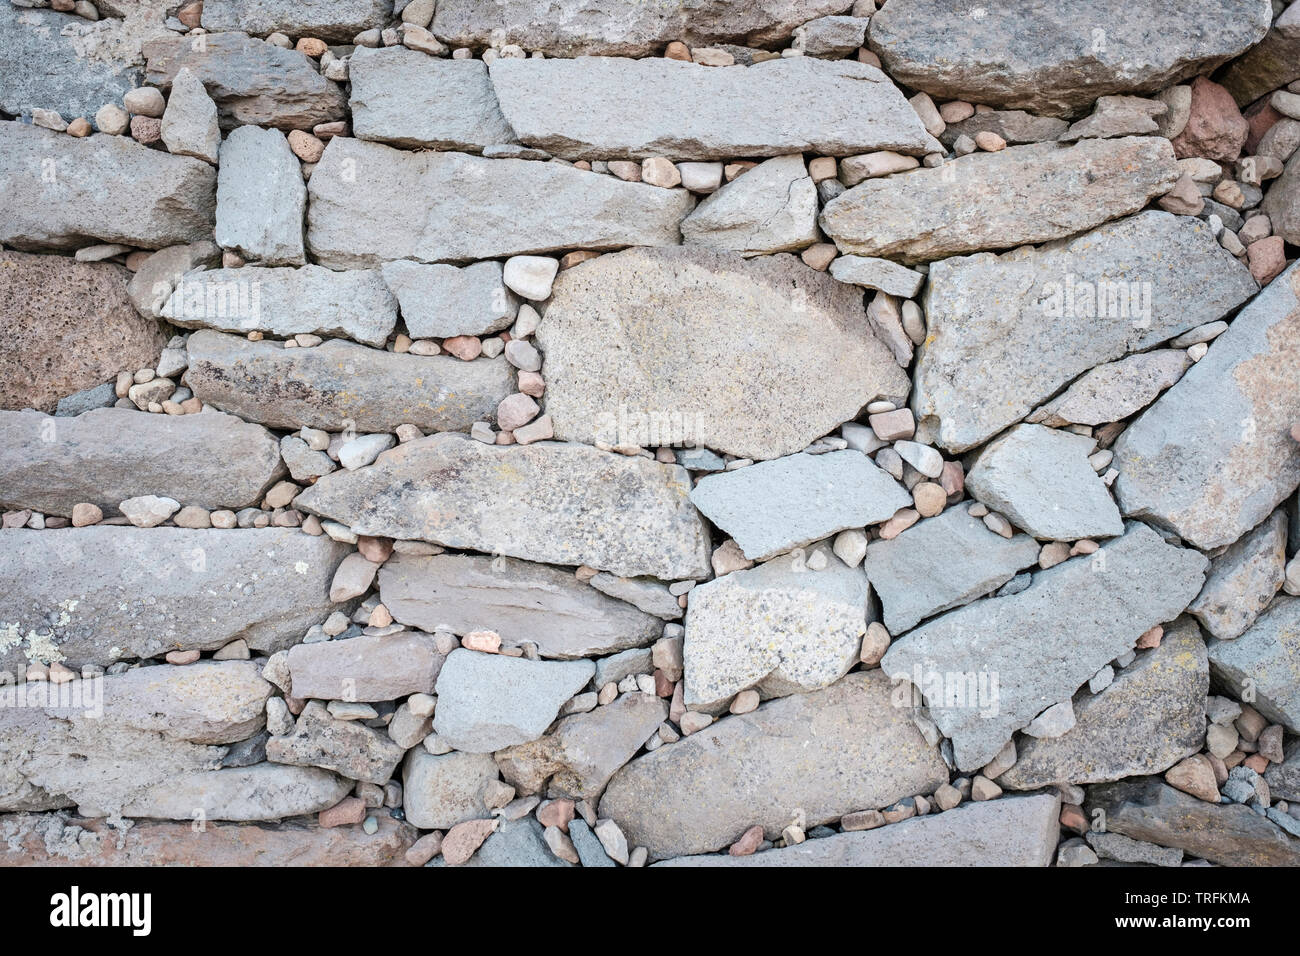 Detail of the small stones for wishes and good omens at Pachamama or Mother Earth Temple wall, Amantani Island, Puno Region, Peru - Stock Image